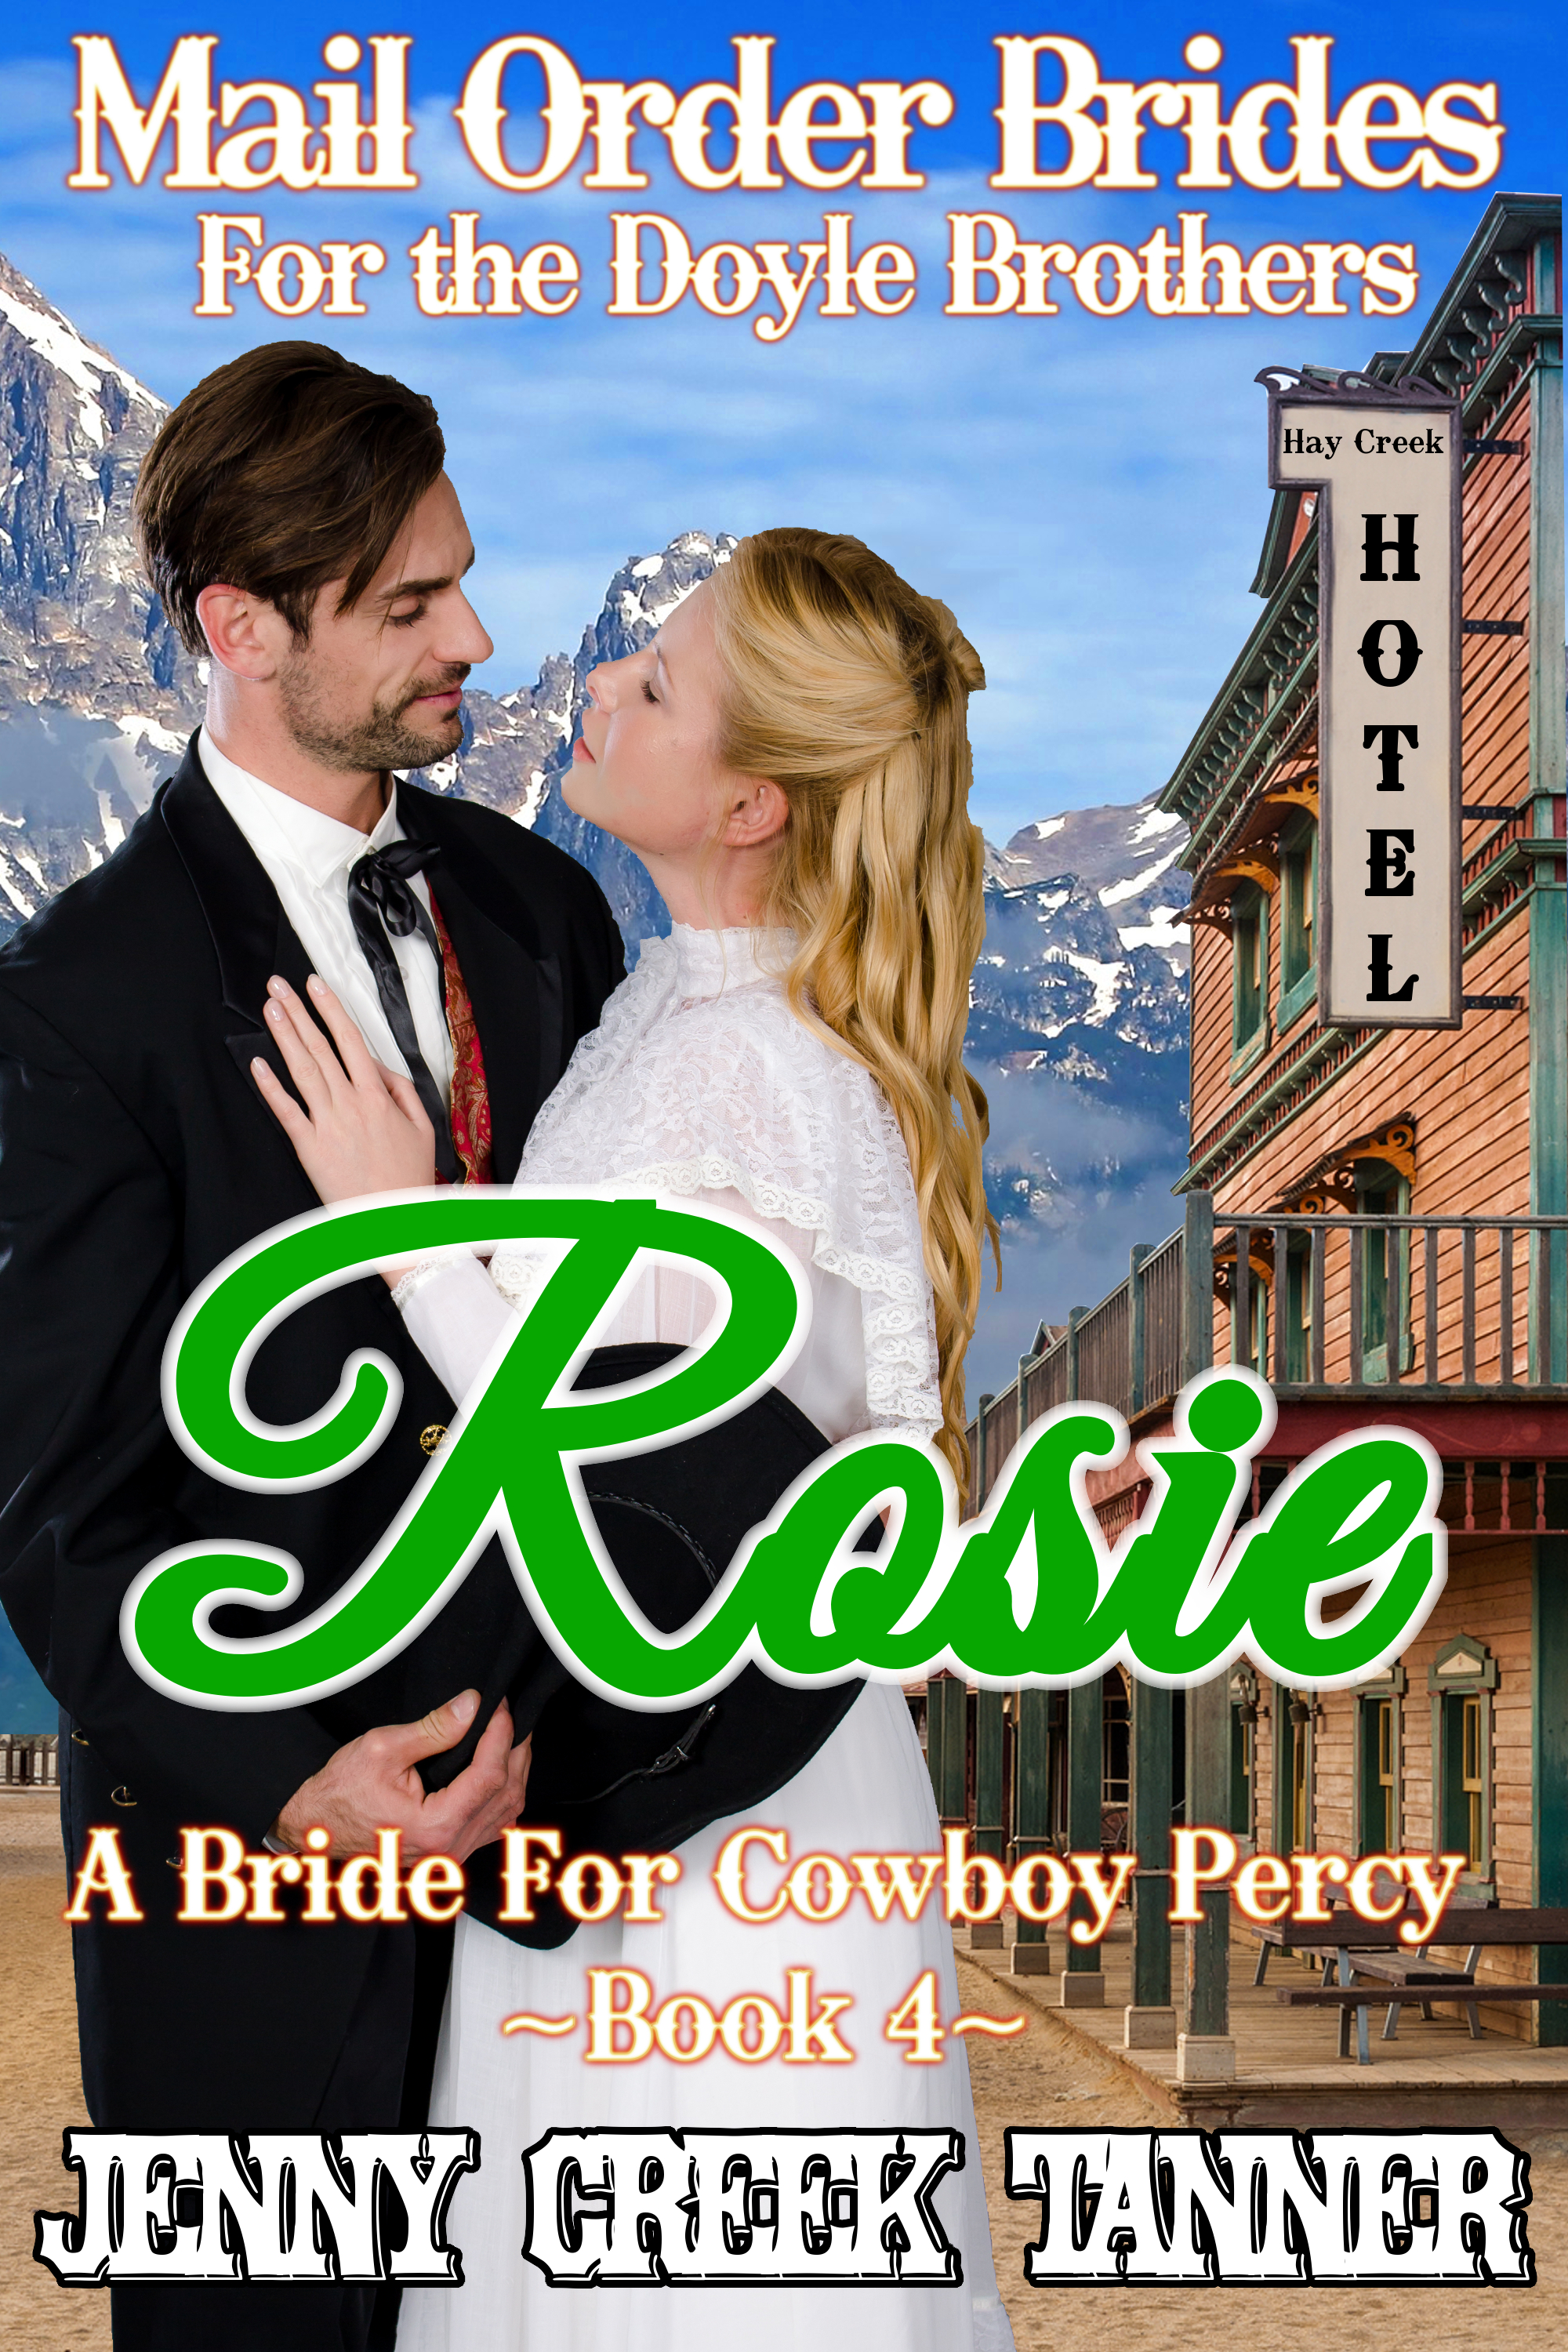 AUDIO BOOK – Rosie: A Bride For Cowboy Percy: Mail Order Brides for the Doyle Brothers, Book 4